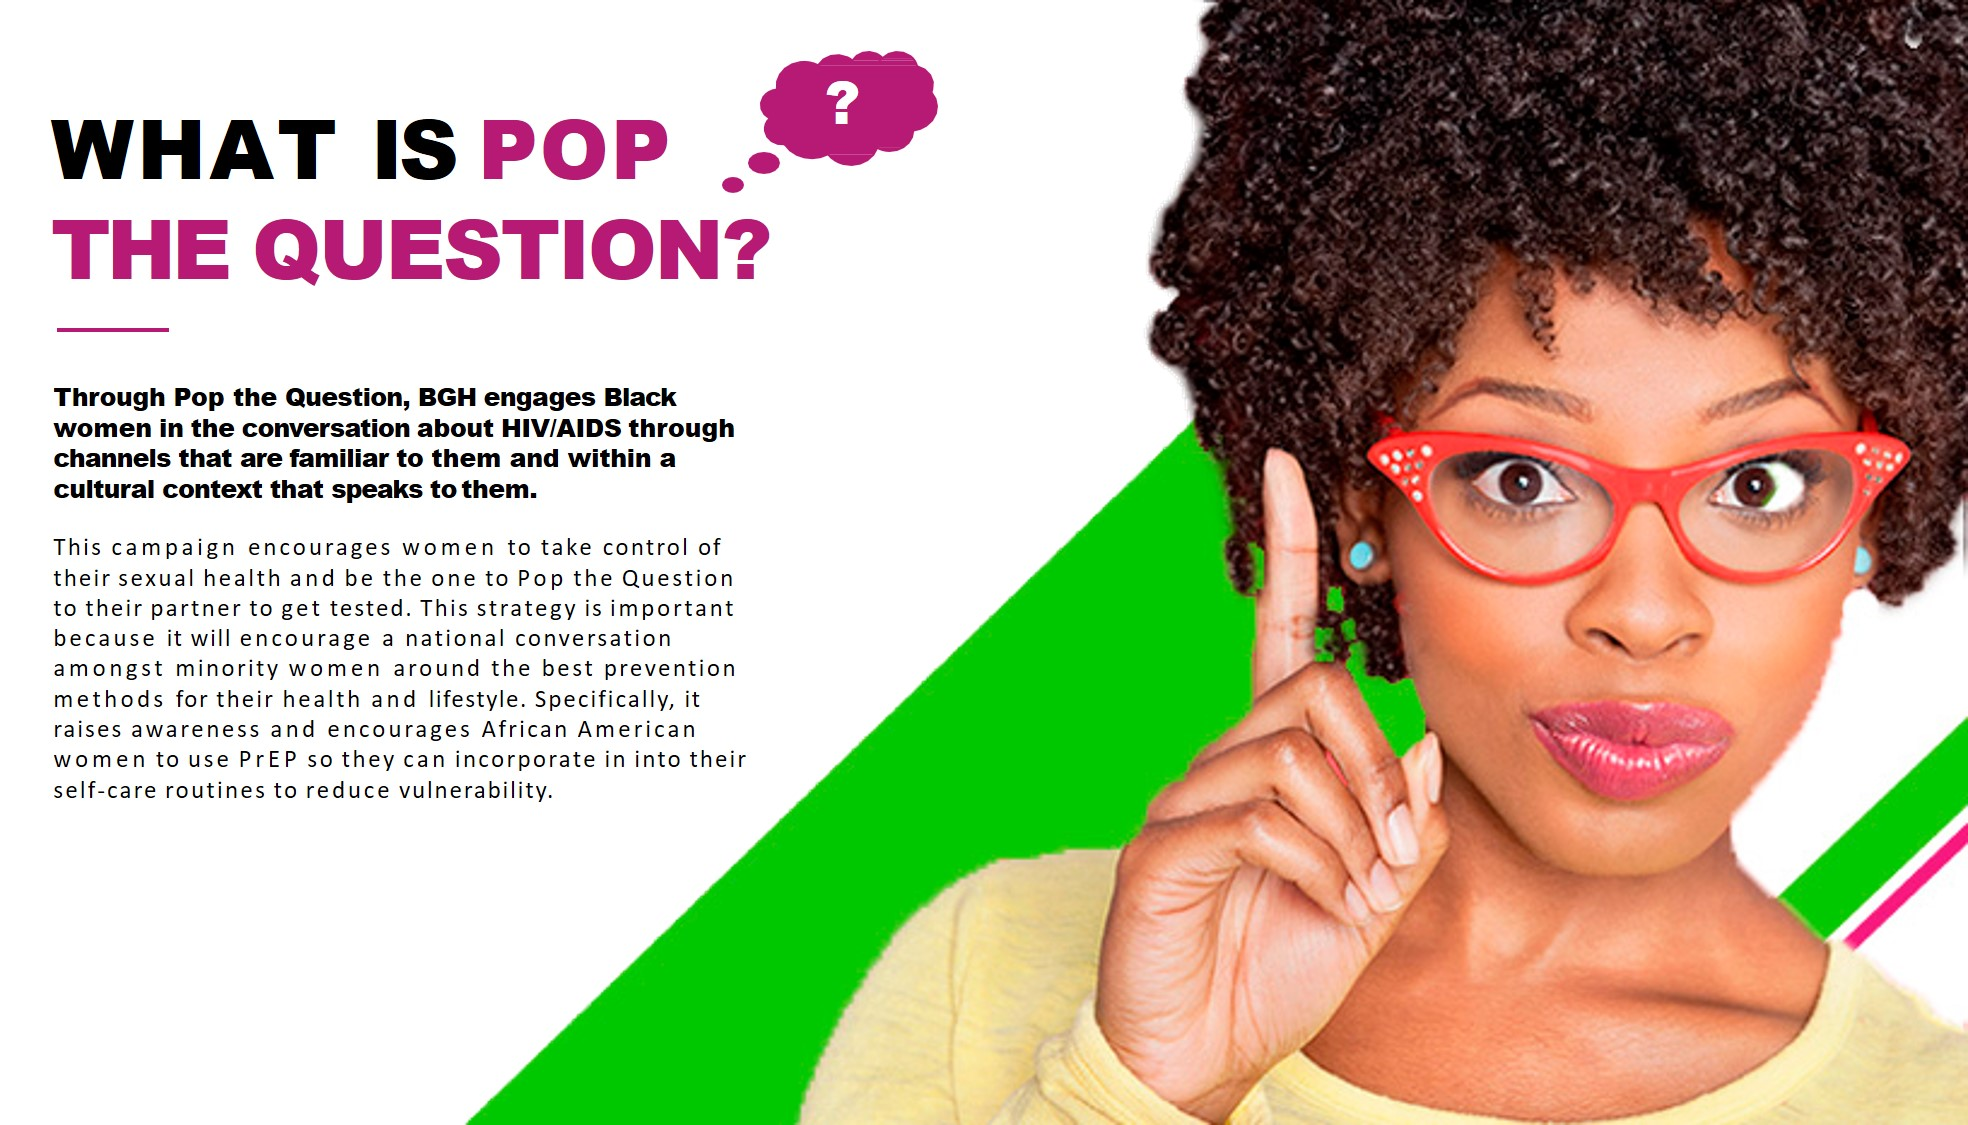 What is pop the question? Through Pop the Question, BGH engages Black women in the conversation about HIV/AIDS through channels that are familiar to them and within a cultural context that speaks to them. This campaign encourages women to take control of their sexual health and be the one to Pop the Question to their partner to get tested. This strategy is important because it will encourage a national conversation amongst minority women around the best prevention methods for their health and lifestyle. Specifically, it raises awareness and encourages African American women to use PrEP so they can incorporate in into their self-care routines to reduce vulnerability.